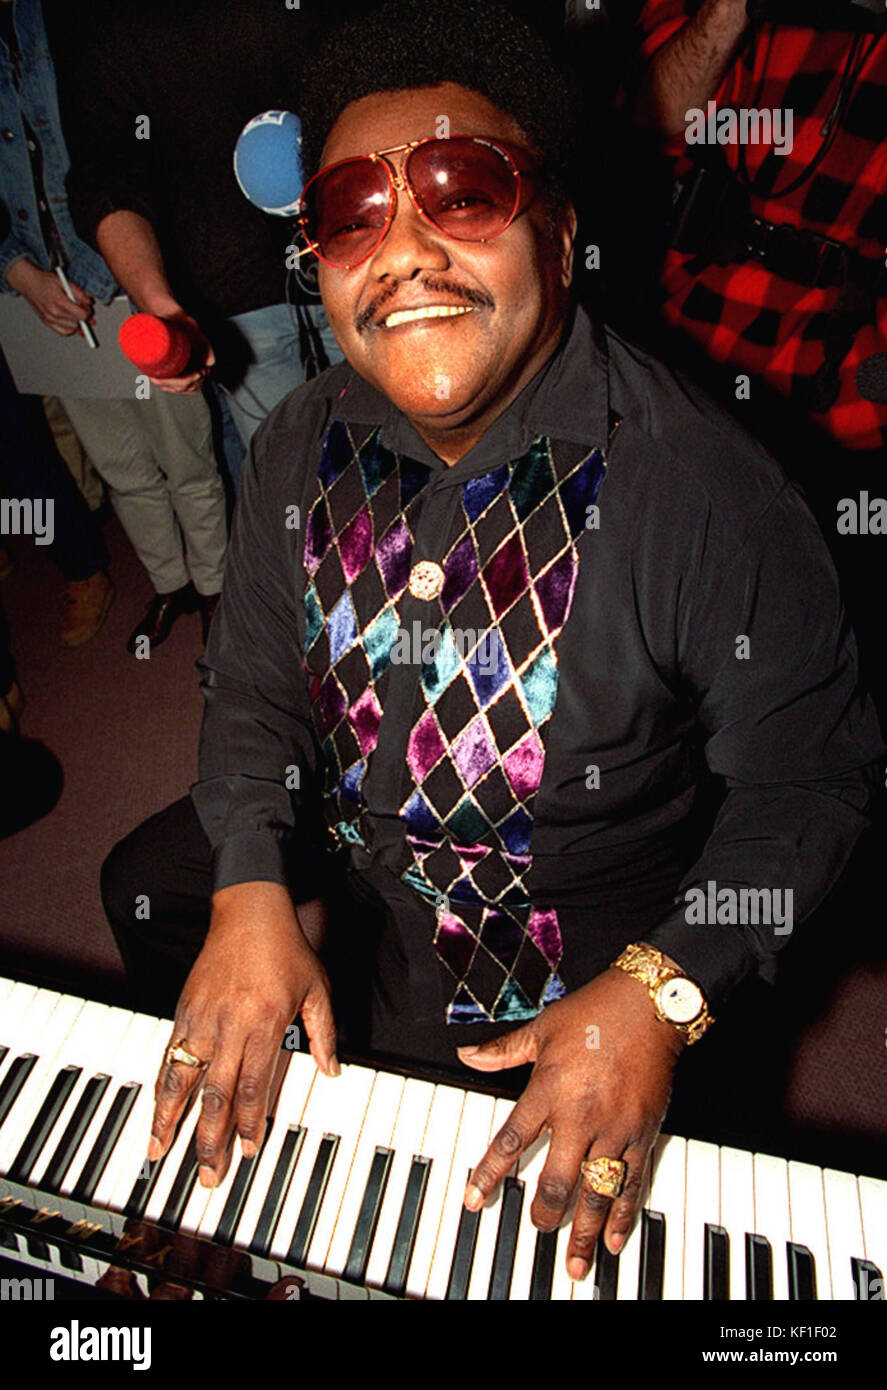 Munich, Germany. 21st Feb, 2013. (dpa FILE) - An undated archive picture shows US musician Fats Domino playing the - Stock Image